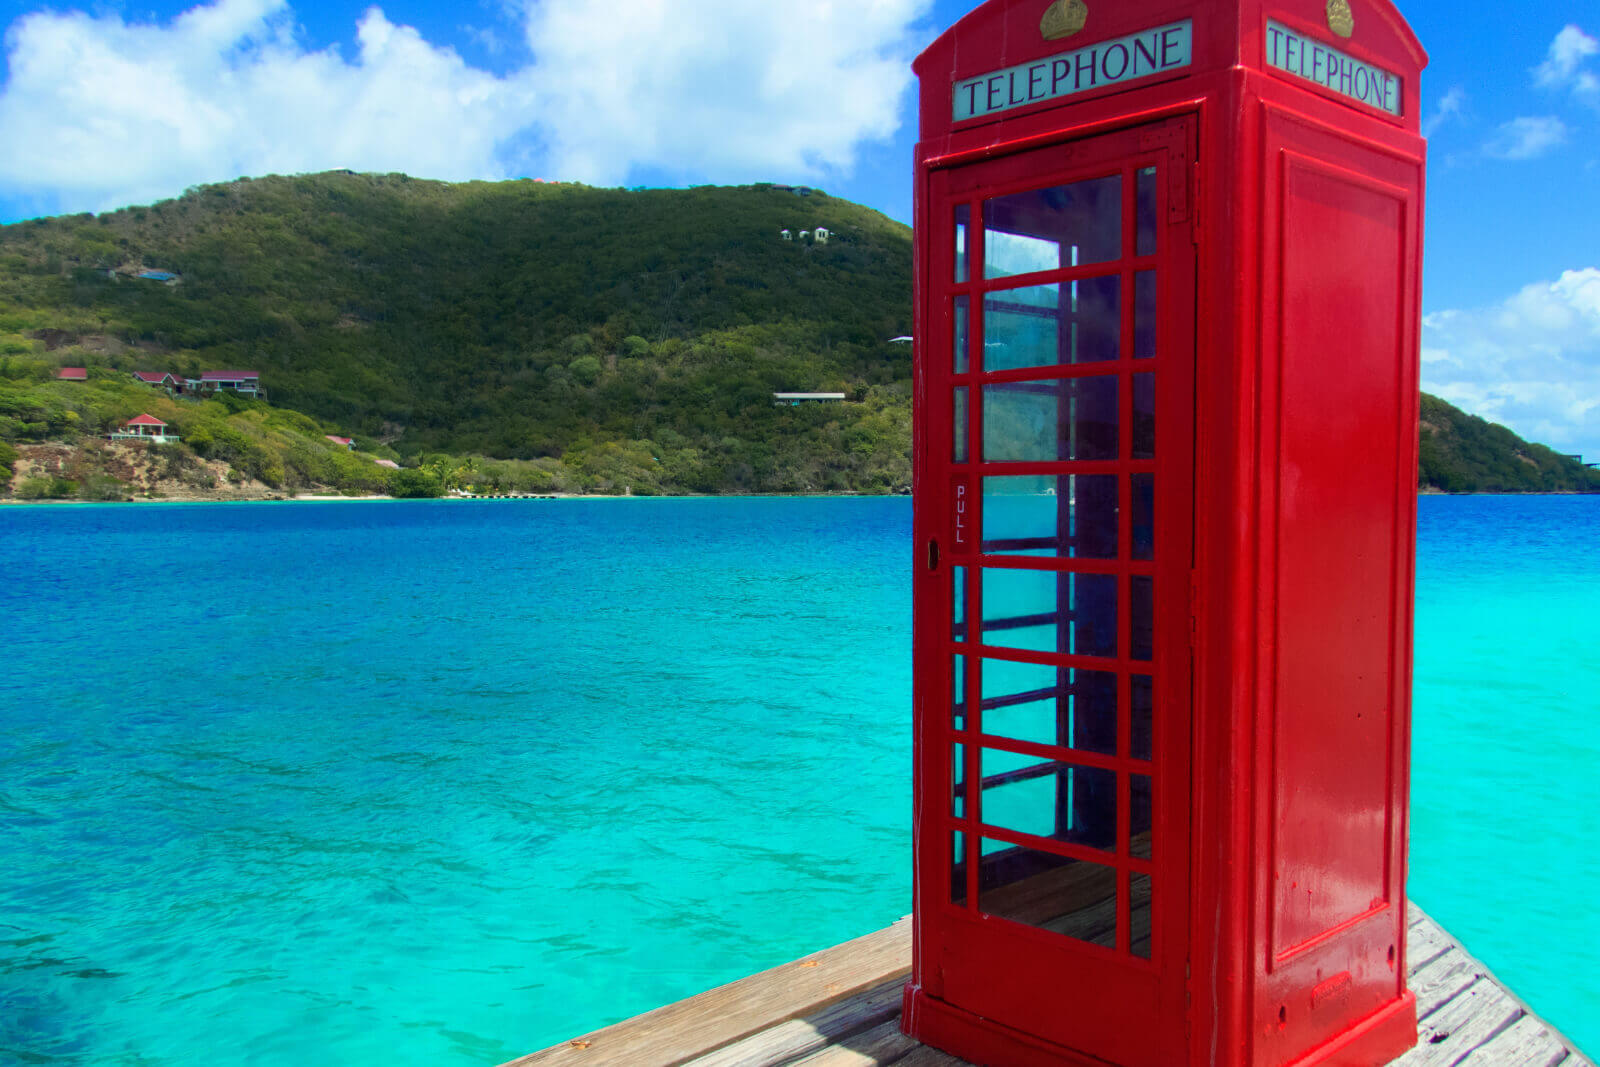 Marina Cay Phone Booth